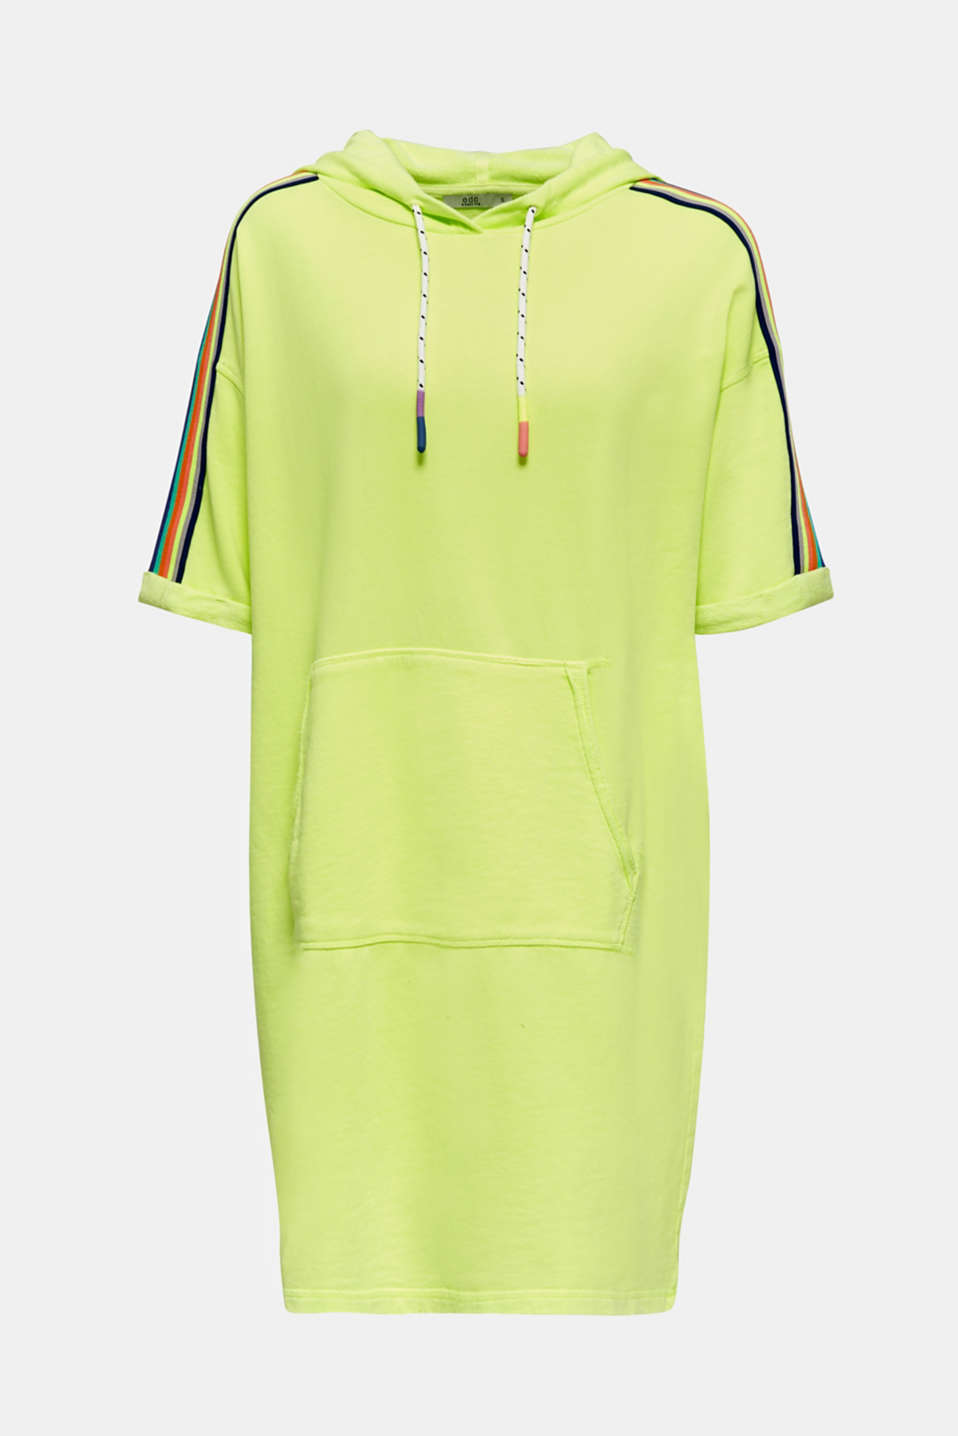 NEON sweatshirt dress with stripes, 100% cotton, LIME YELLOW, detail image number 7